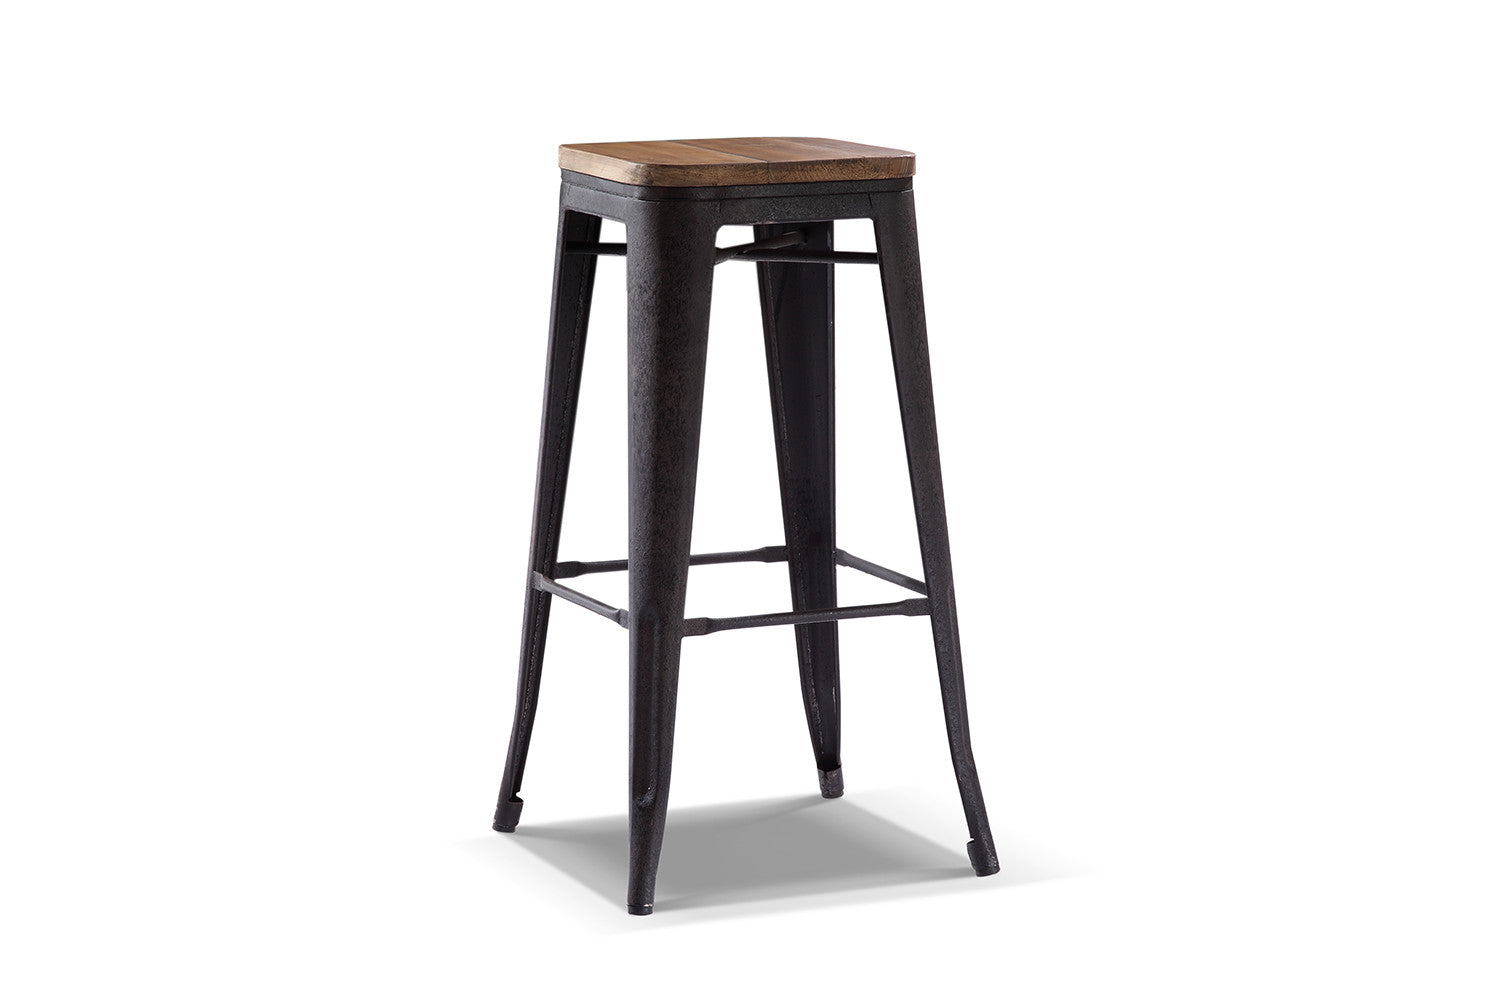 tabouret de bar bois et metal. Black Bedroom Furniture Sets. Home Design Ideas